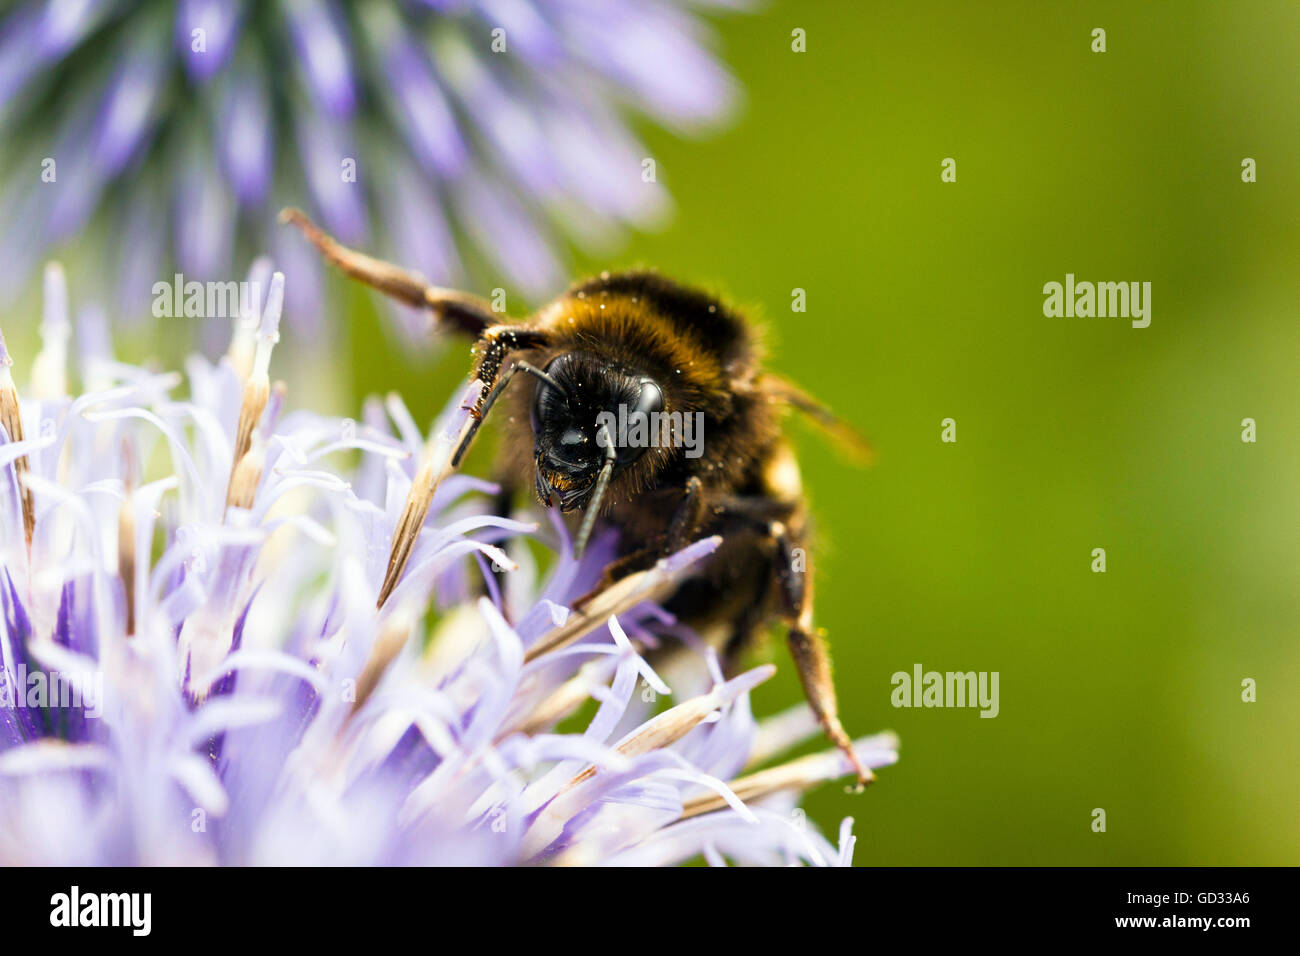 Close-up of bee on a flower - Stock Image